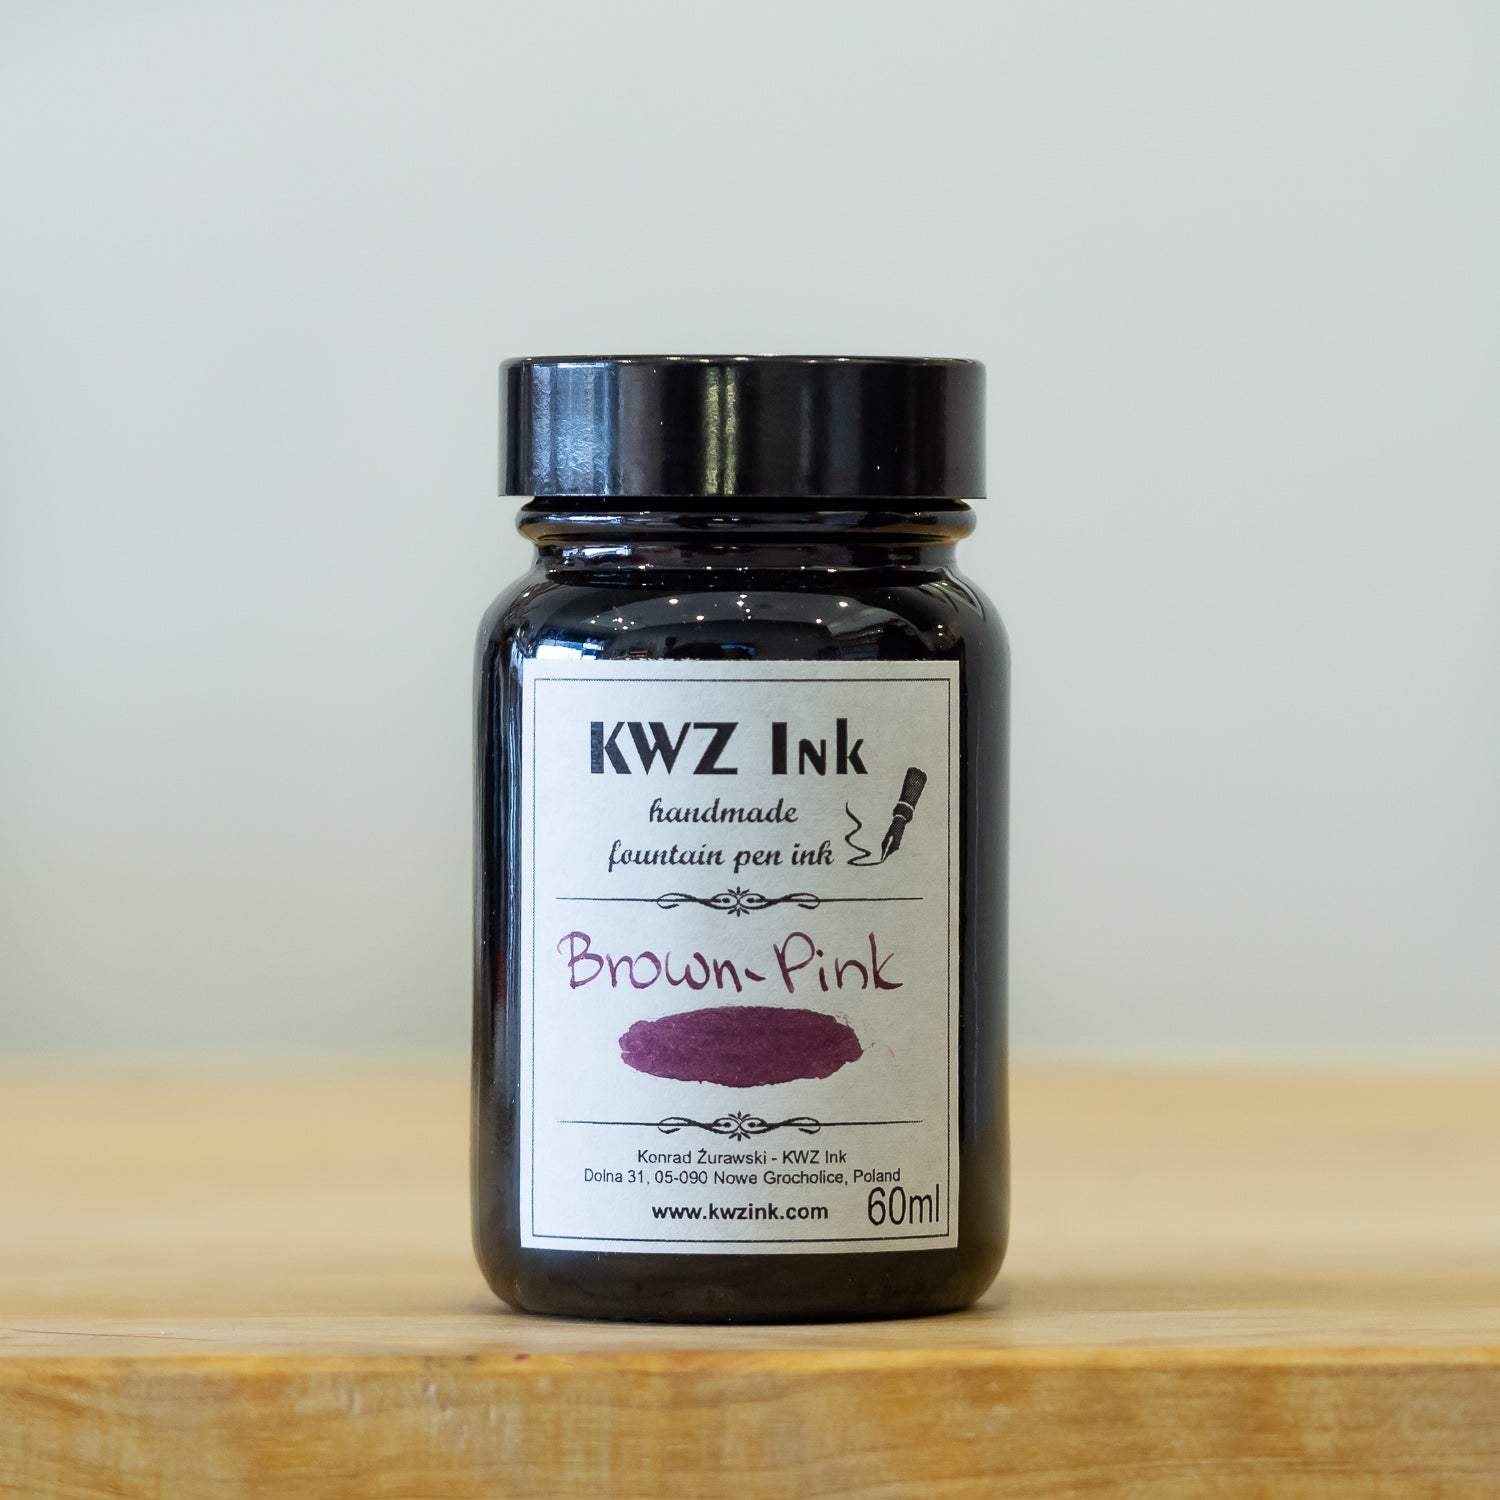 KWZ Brown Pink fountain pen ink